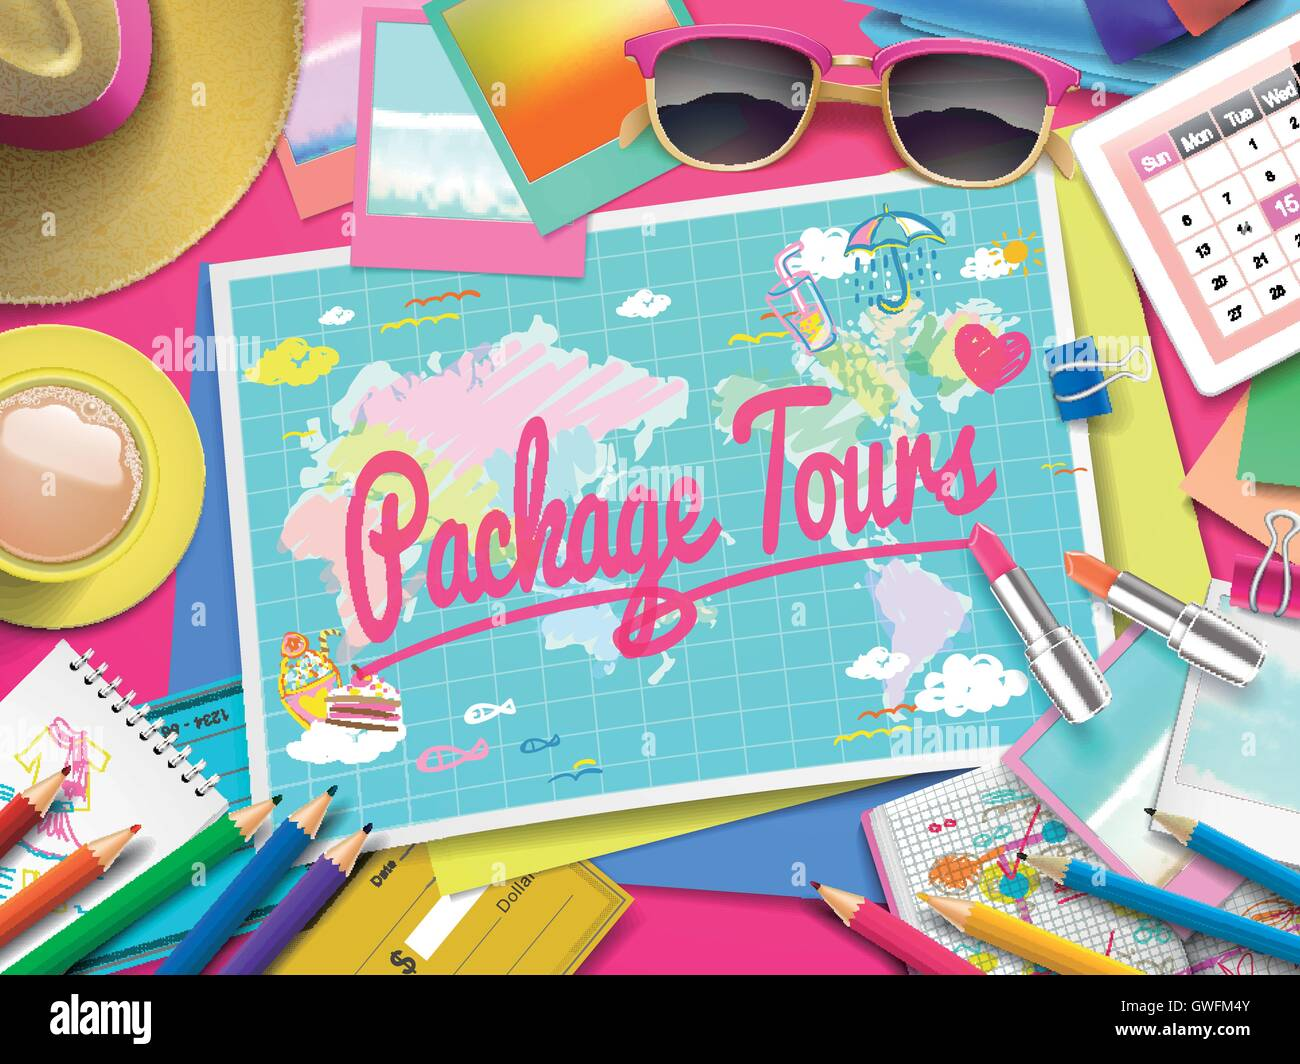 Package Tours on map, top view of colorful travel essentials on table - Stock Vector